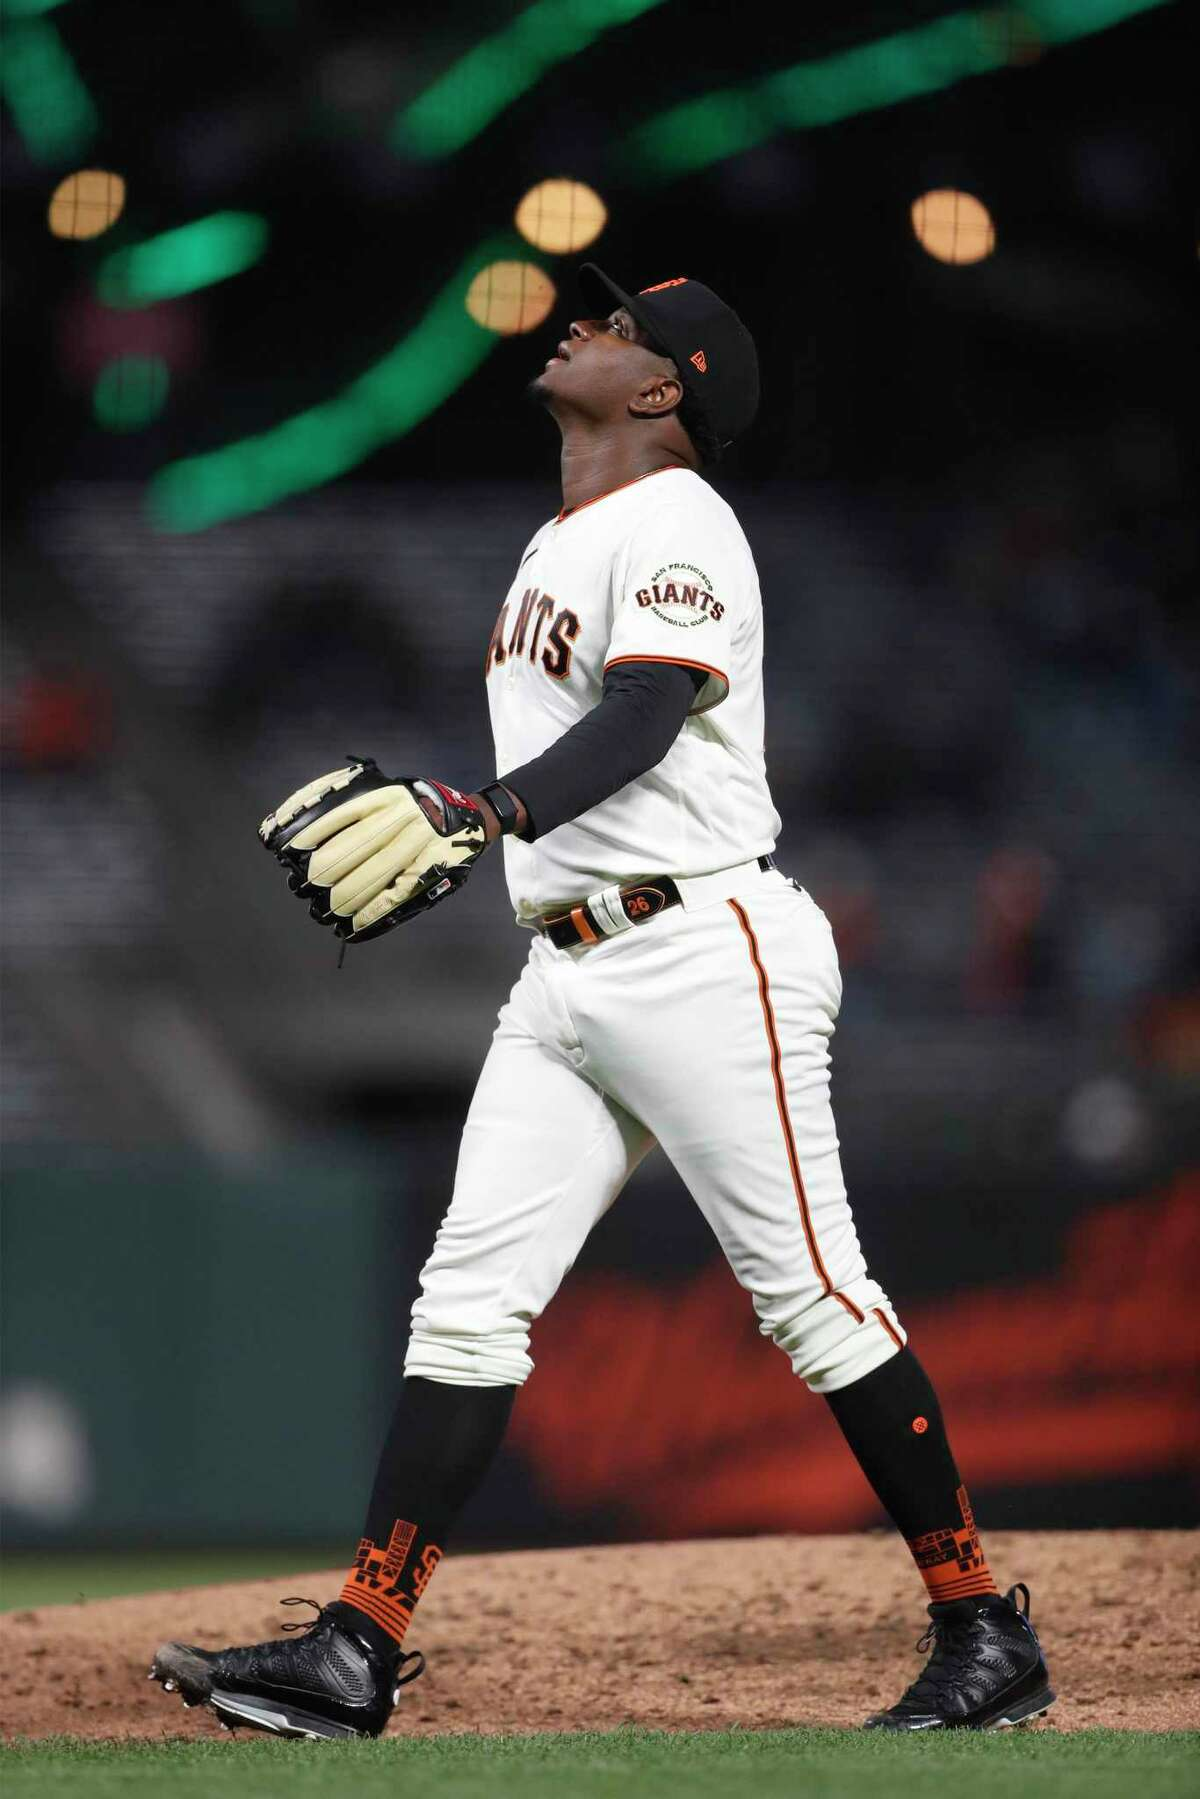 San Francisco Giants' Gregory Santos looks skyward after making his major league debut against Miami Marlins in 6th inning of MLB game at Oracle Park in San Francisco, Calif., on Thursday, April 22, 2021. Santos struck out the first two batters he faced while retiring the side in order in the inning.